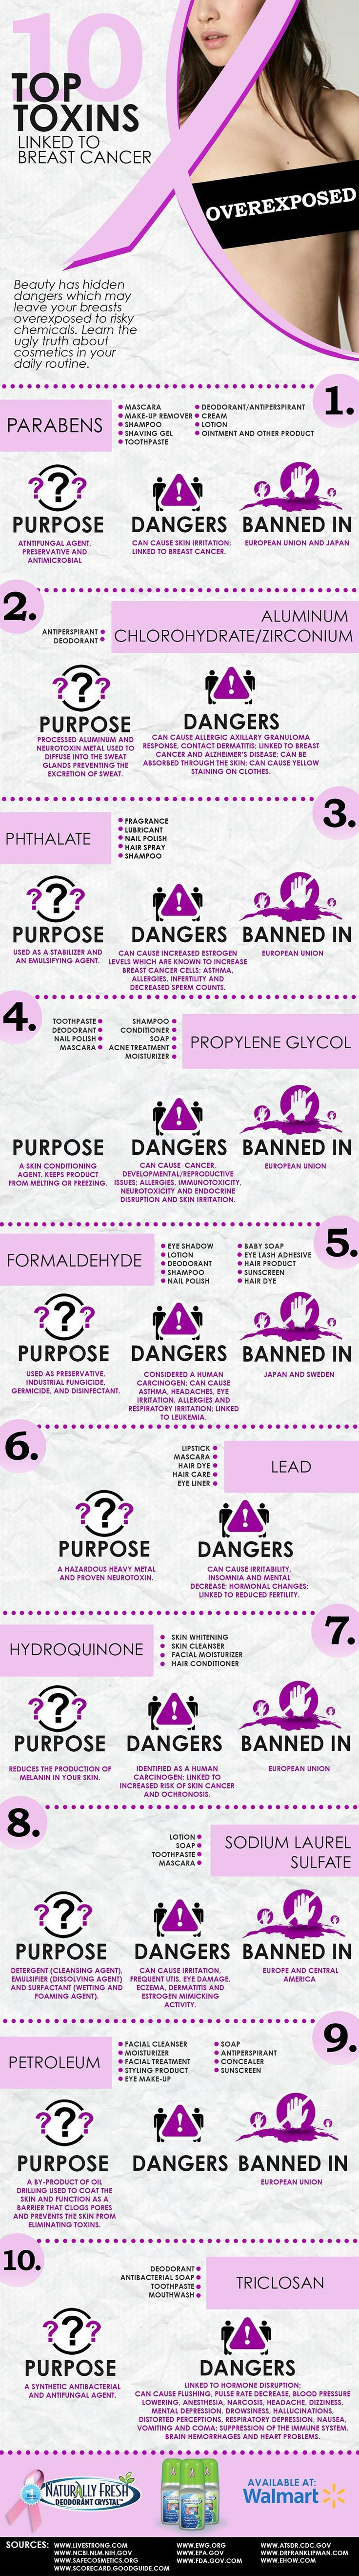 Top 10 Toxins linked to breast cancer. Find out if the cleaning and personal care products you use at home containe any of these cancer causing toxic chemicals www.facebook.com/ToxicFreeWithJennaLee (Best Skin Diet)